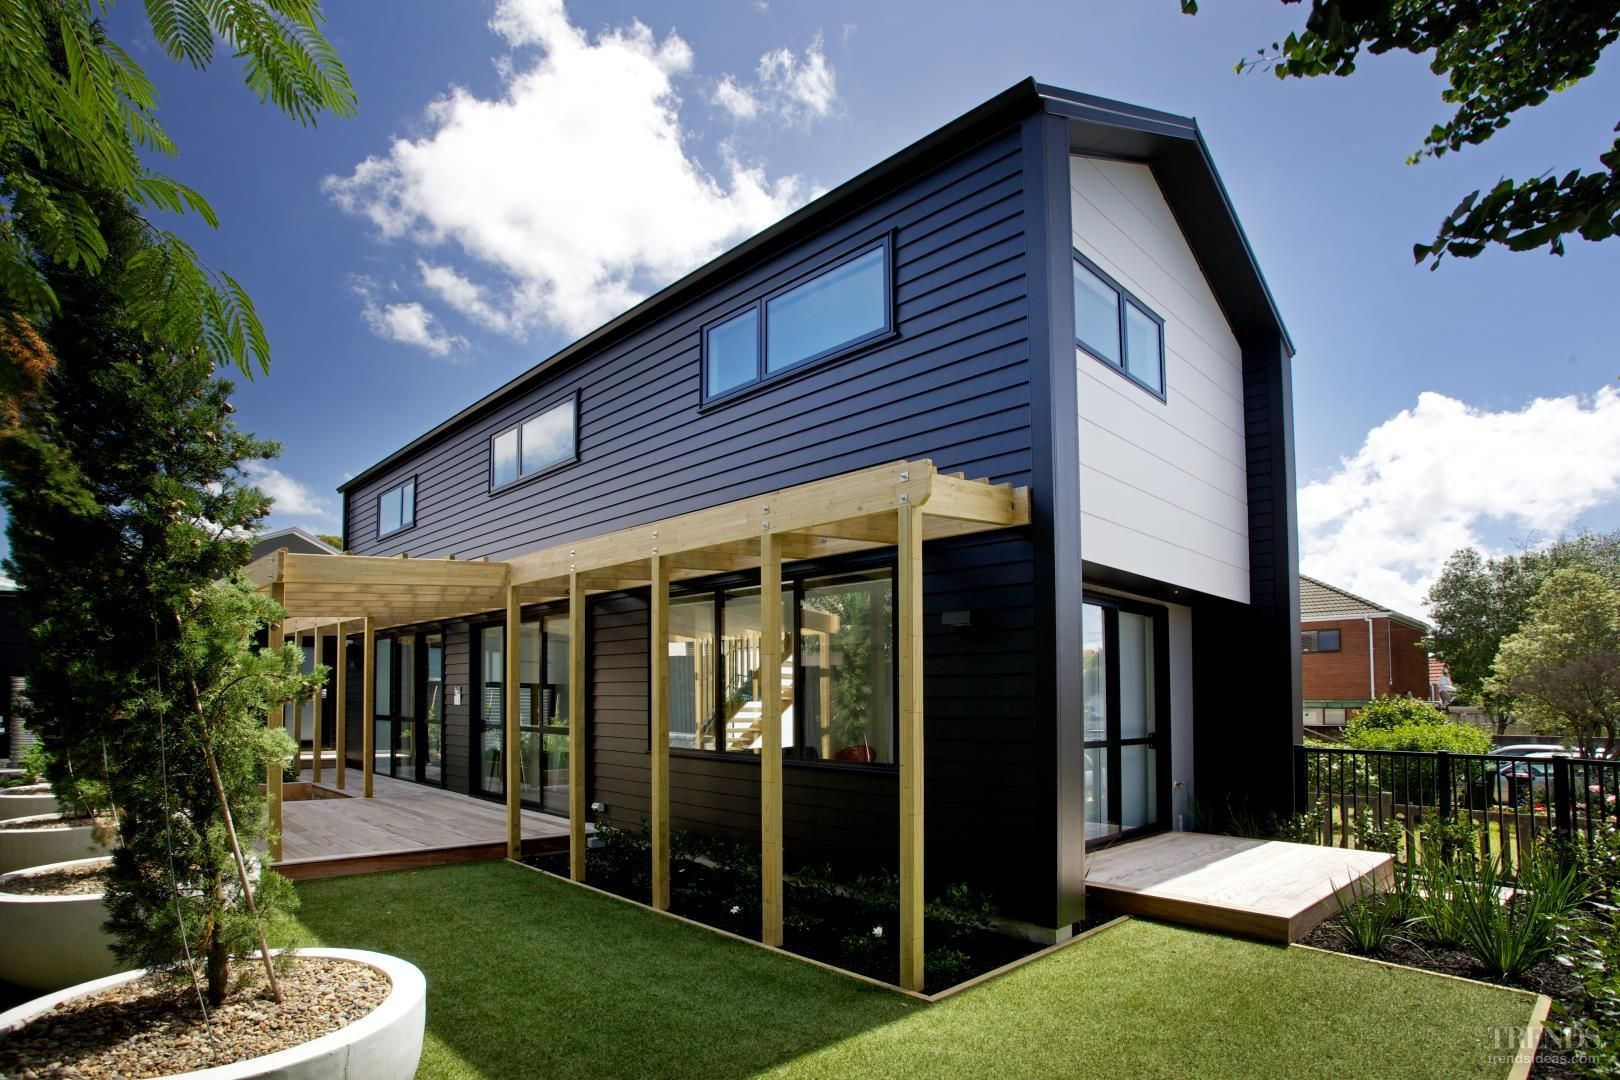 James hardie linea weatherboard cladding google search for Modern weatherboard home designs